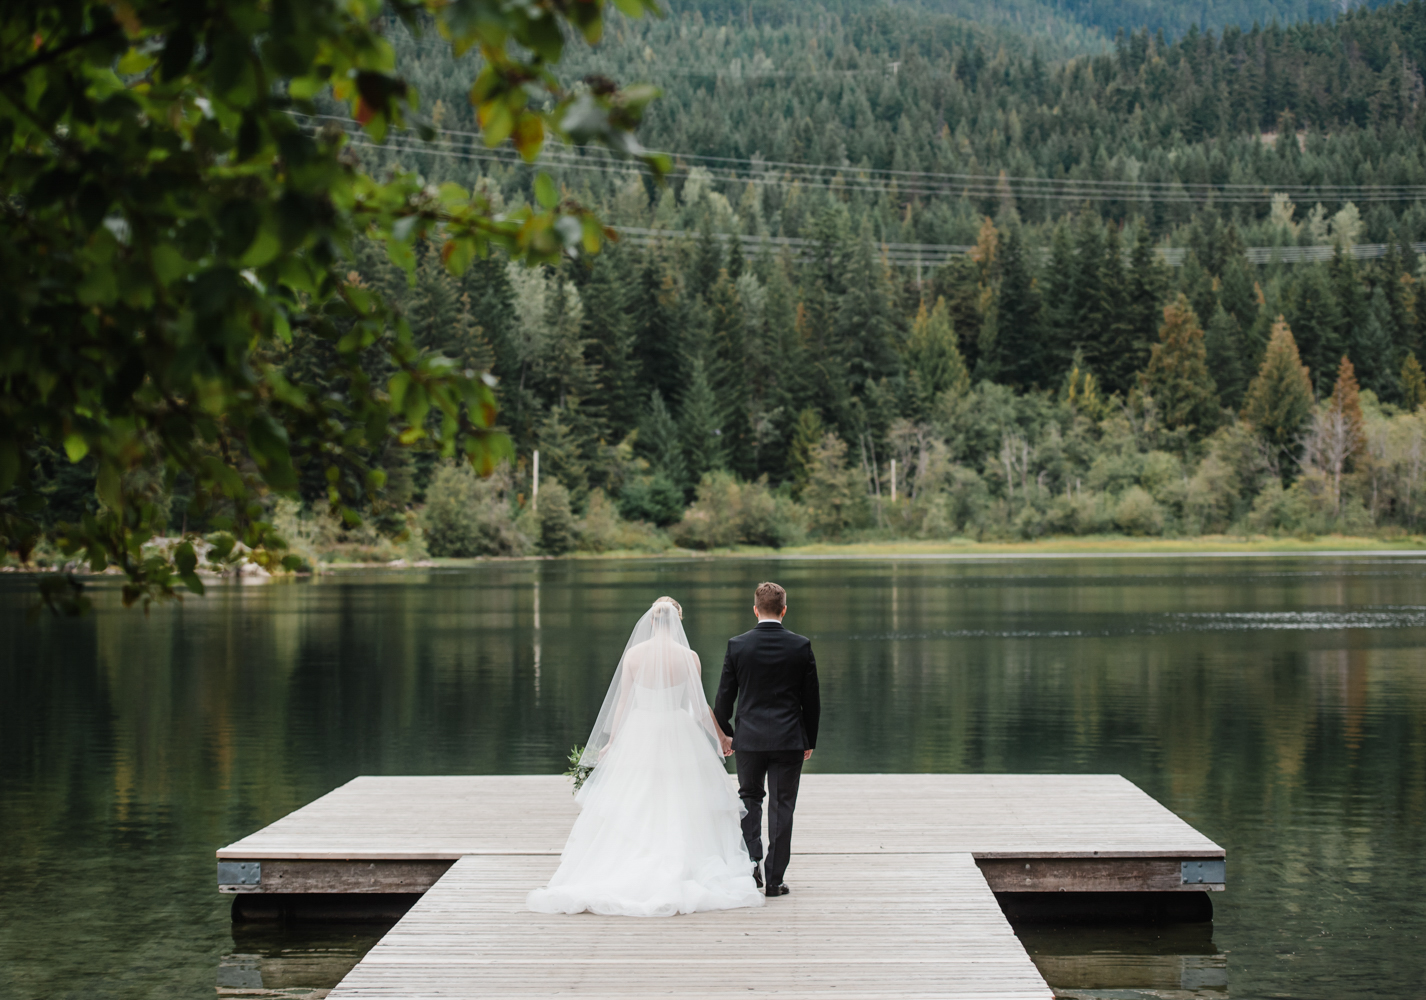 Nitalake wedding83.jpg